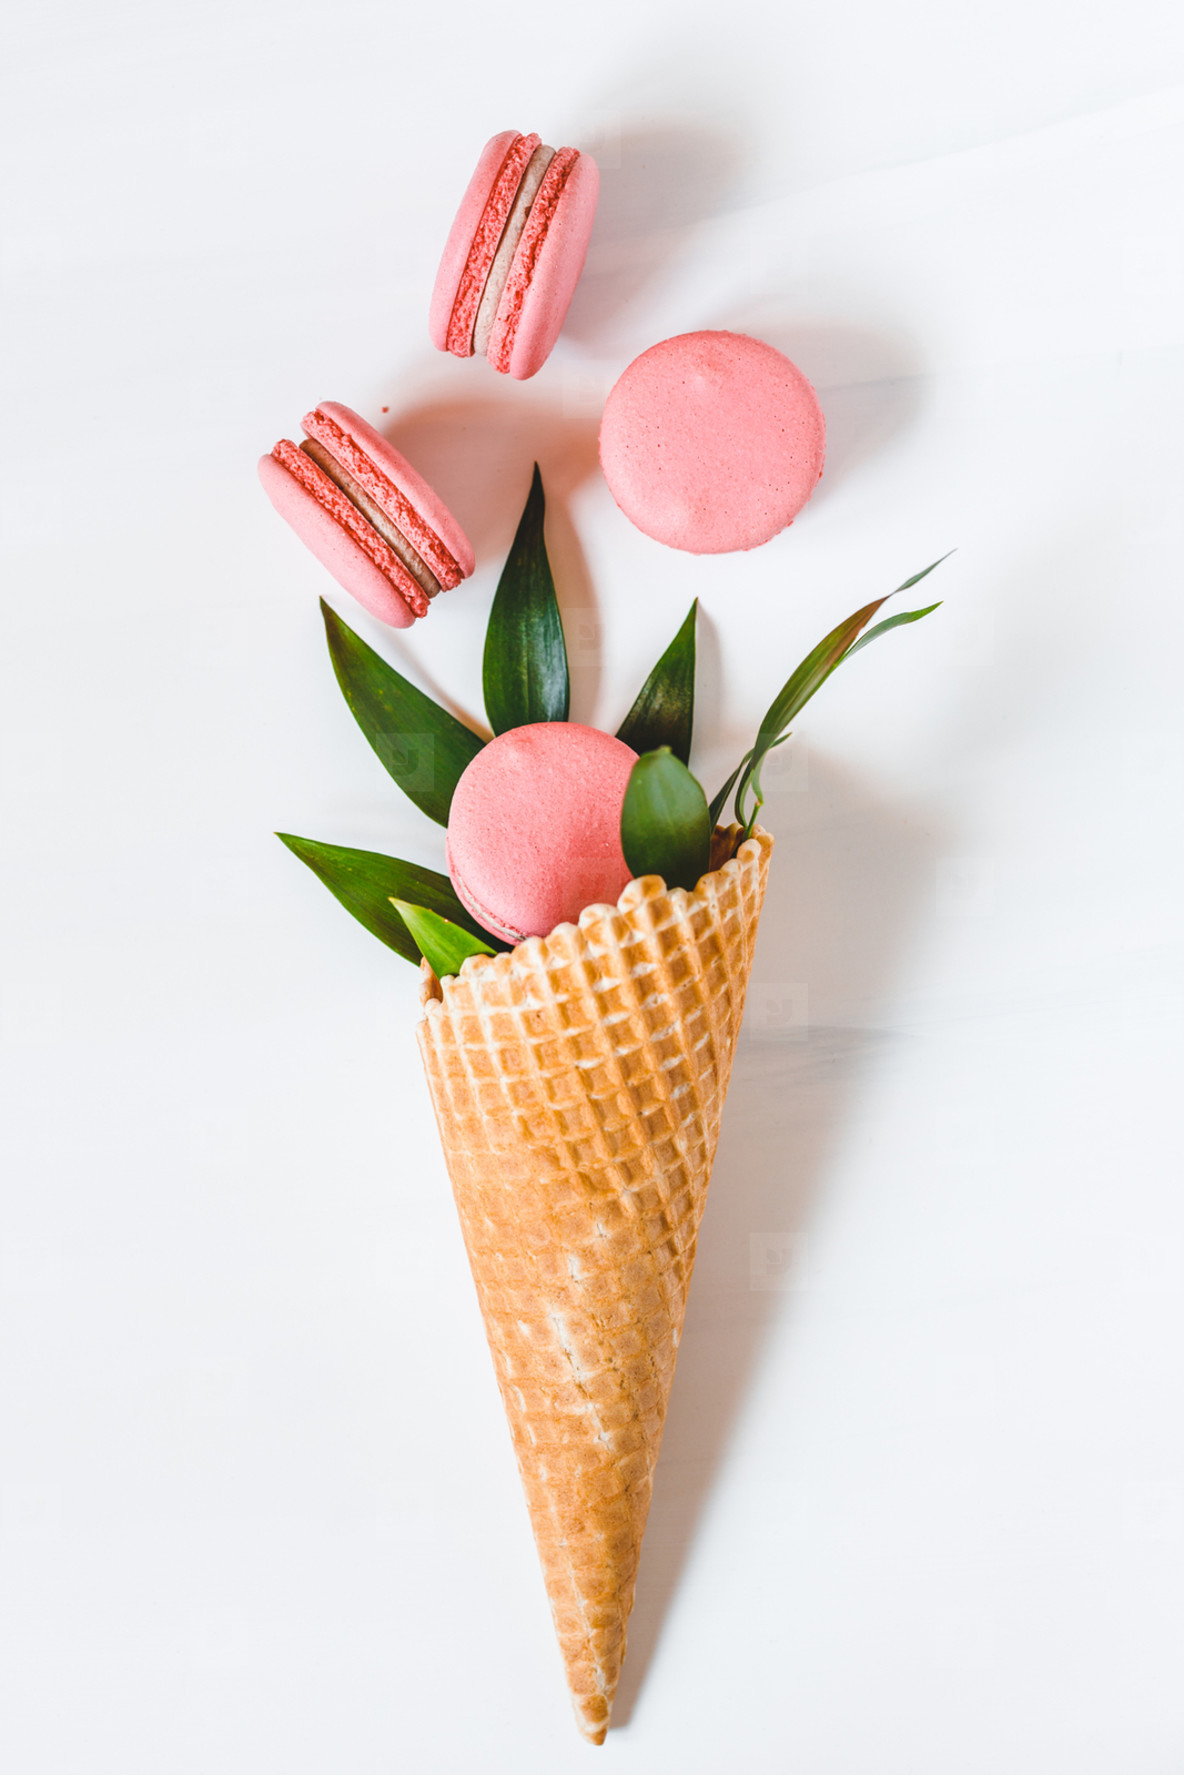 Spring abstract bouquet with a waffle cone  coral macaroons and green plant on a white background  Top view  flat lay